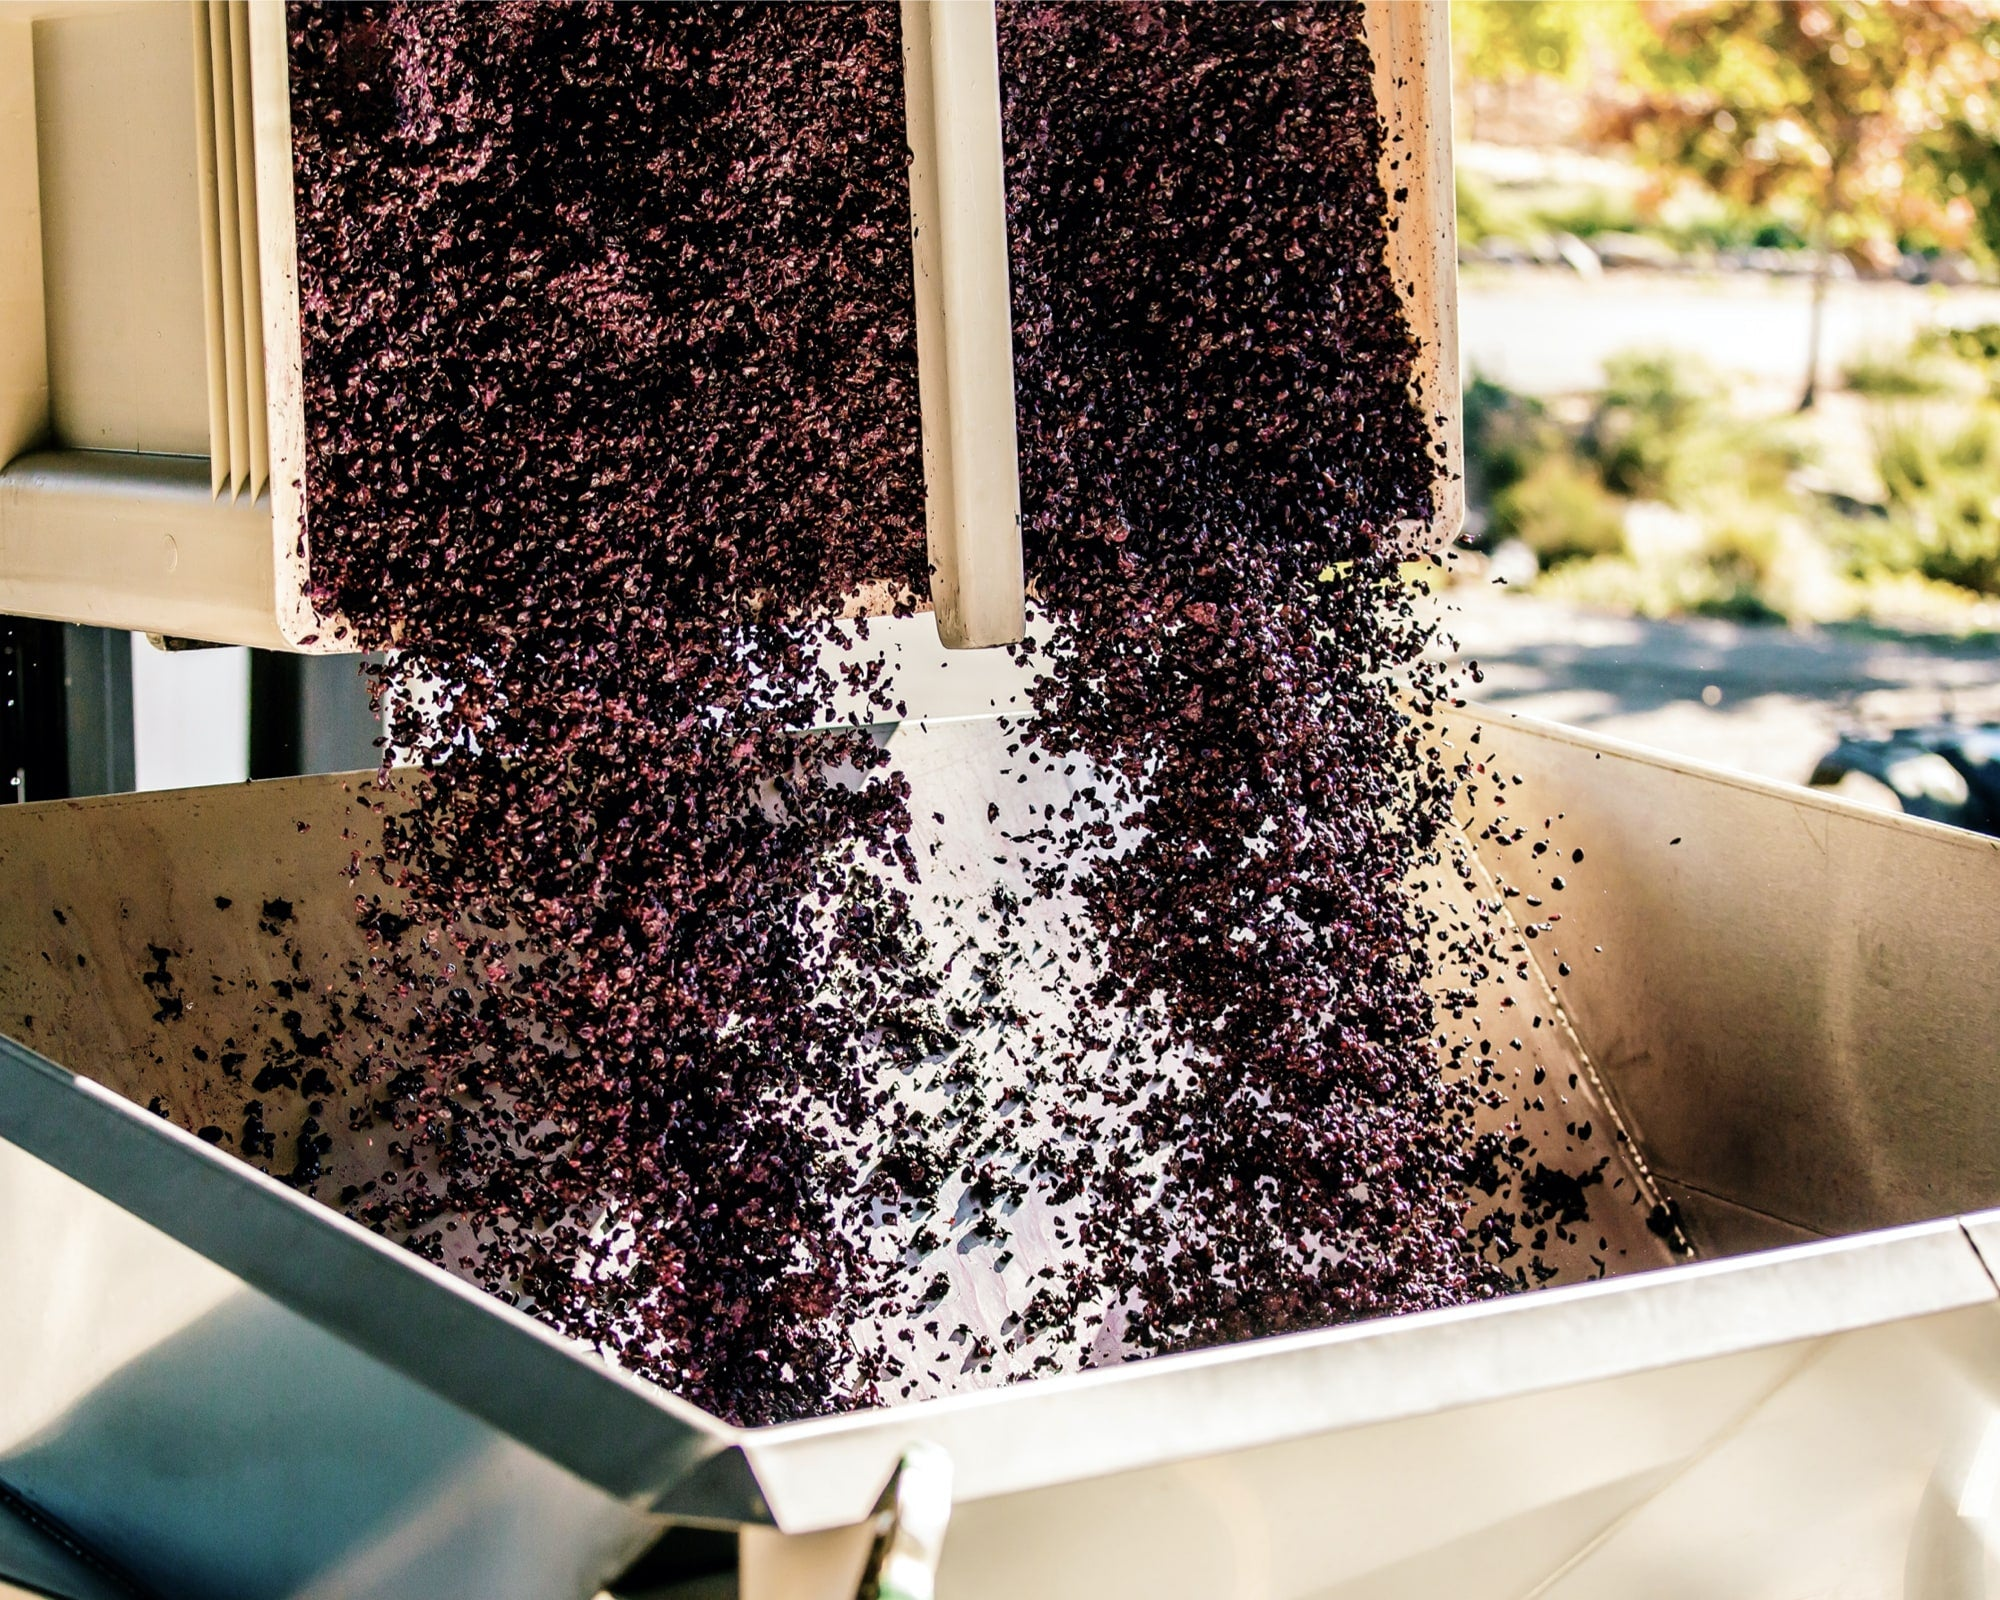 Grapes being poured into the pressing machinery